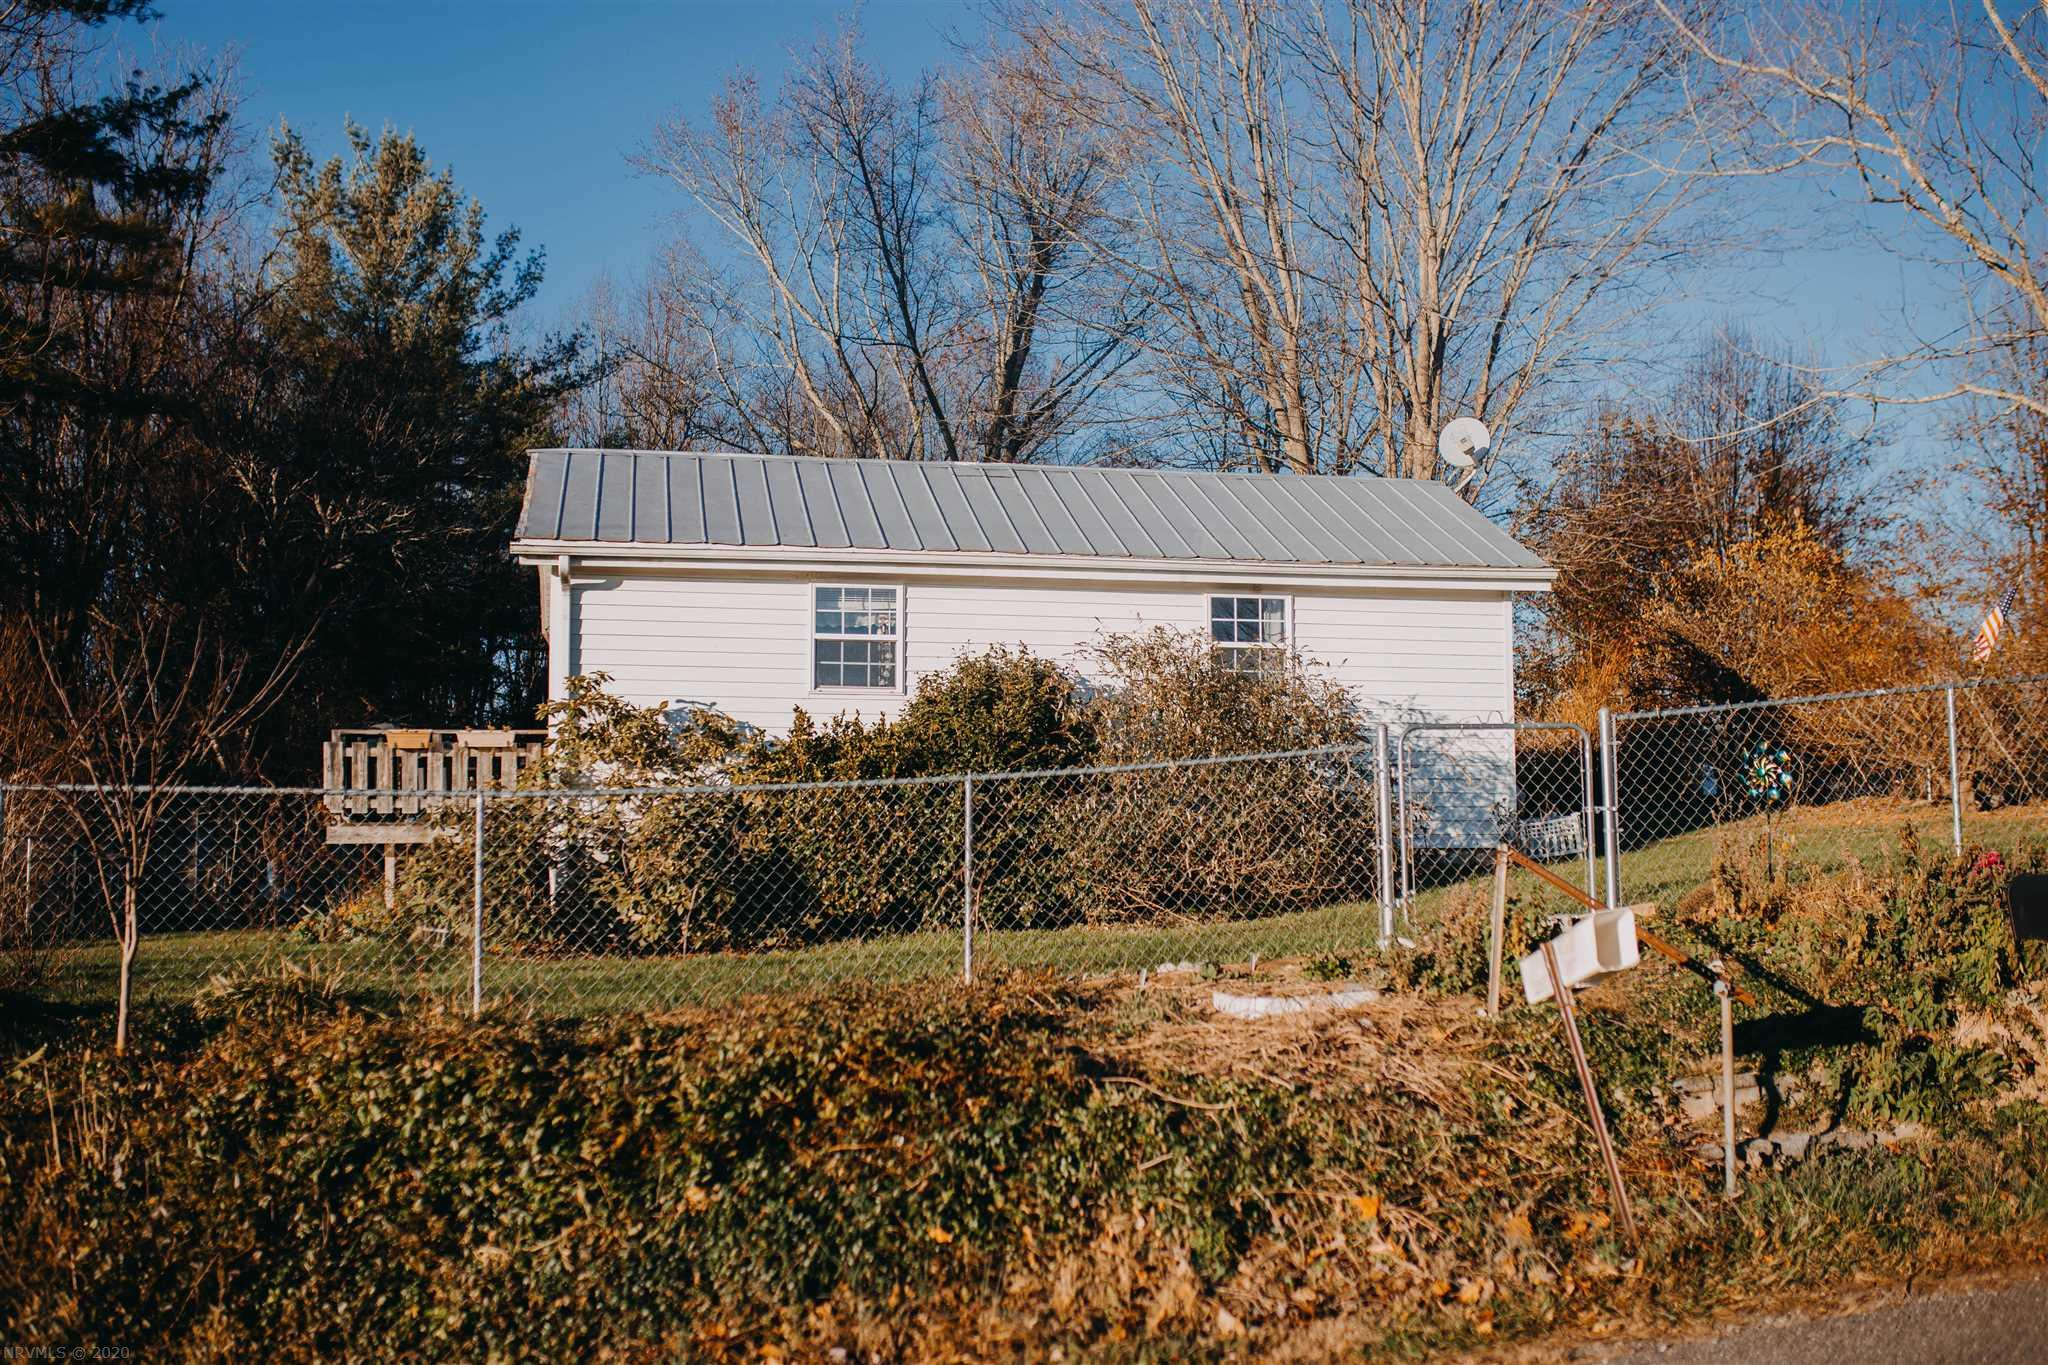 Holiday Handy-man special, this house has a ton of potential. Extra Rooms. Priced to sell, Large lot 3.54 Acres primarily wooded area, some big timber. Storage Building on property. Wrap Around Deck. Could make a great Investment Property. Call Today